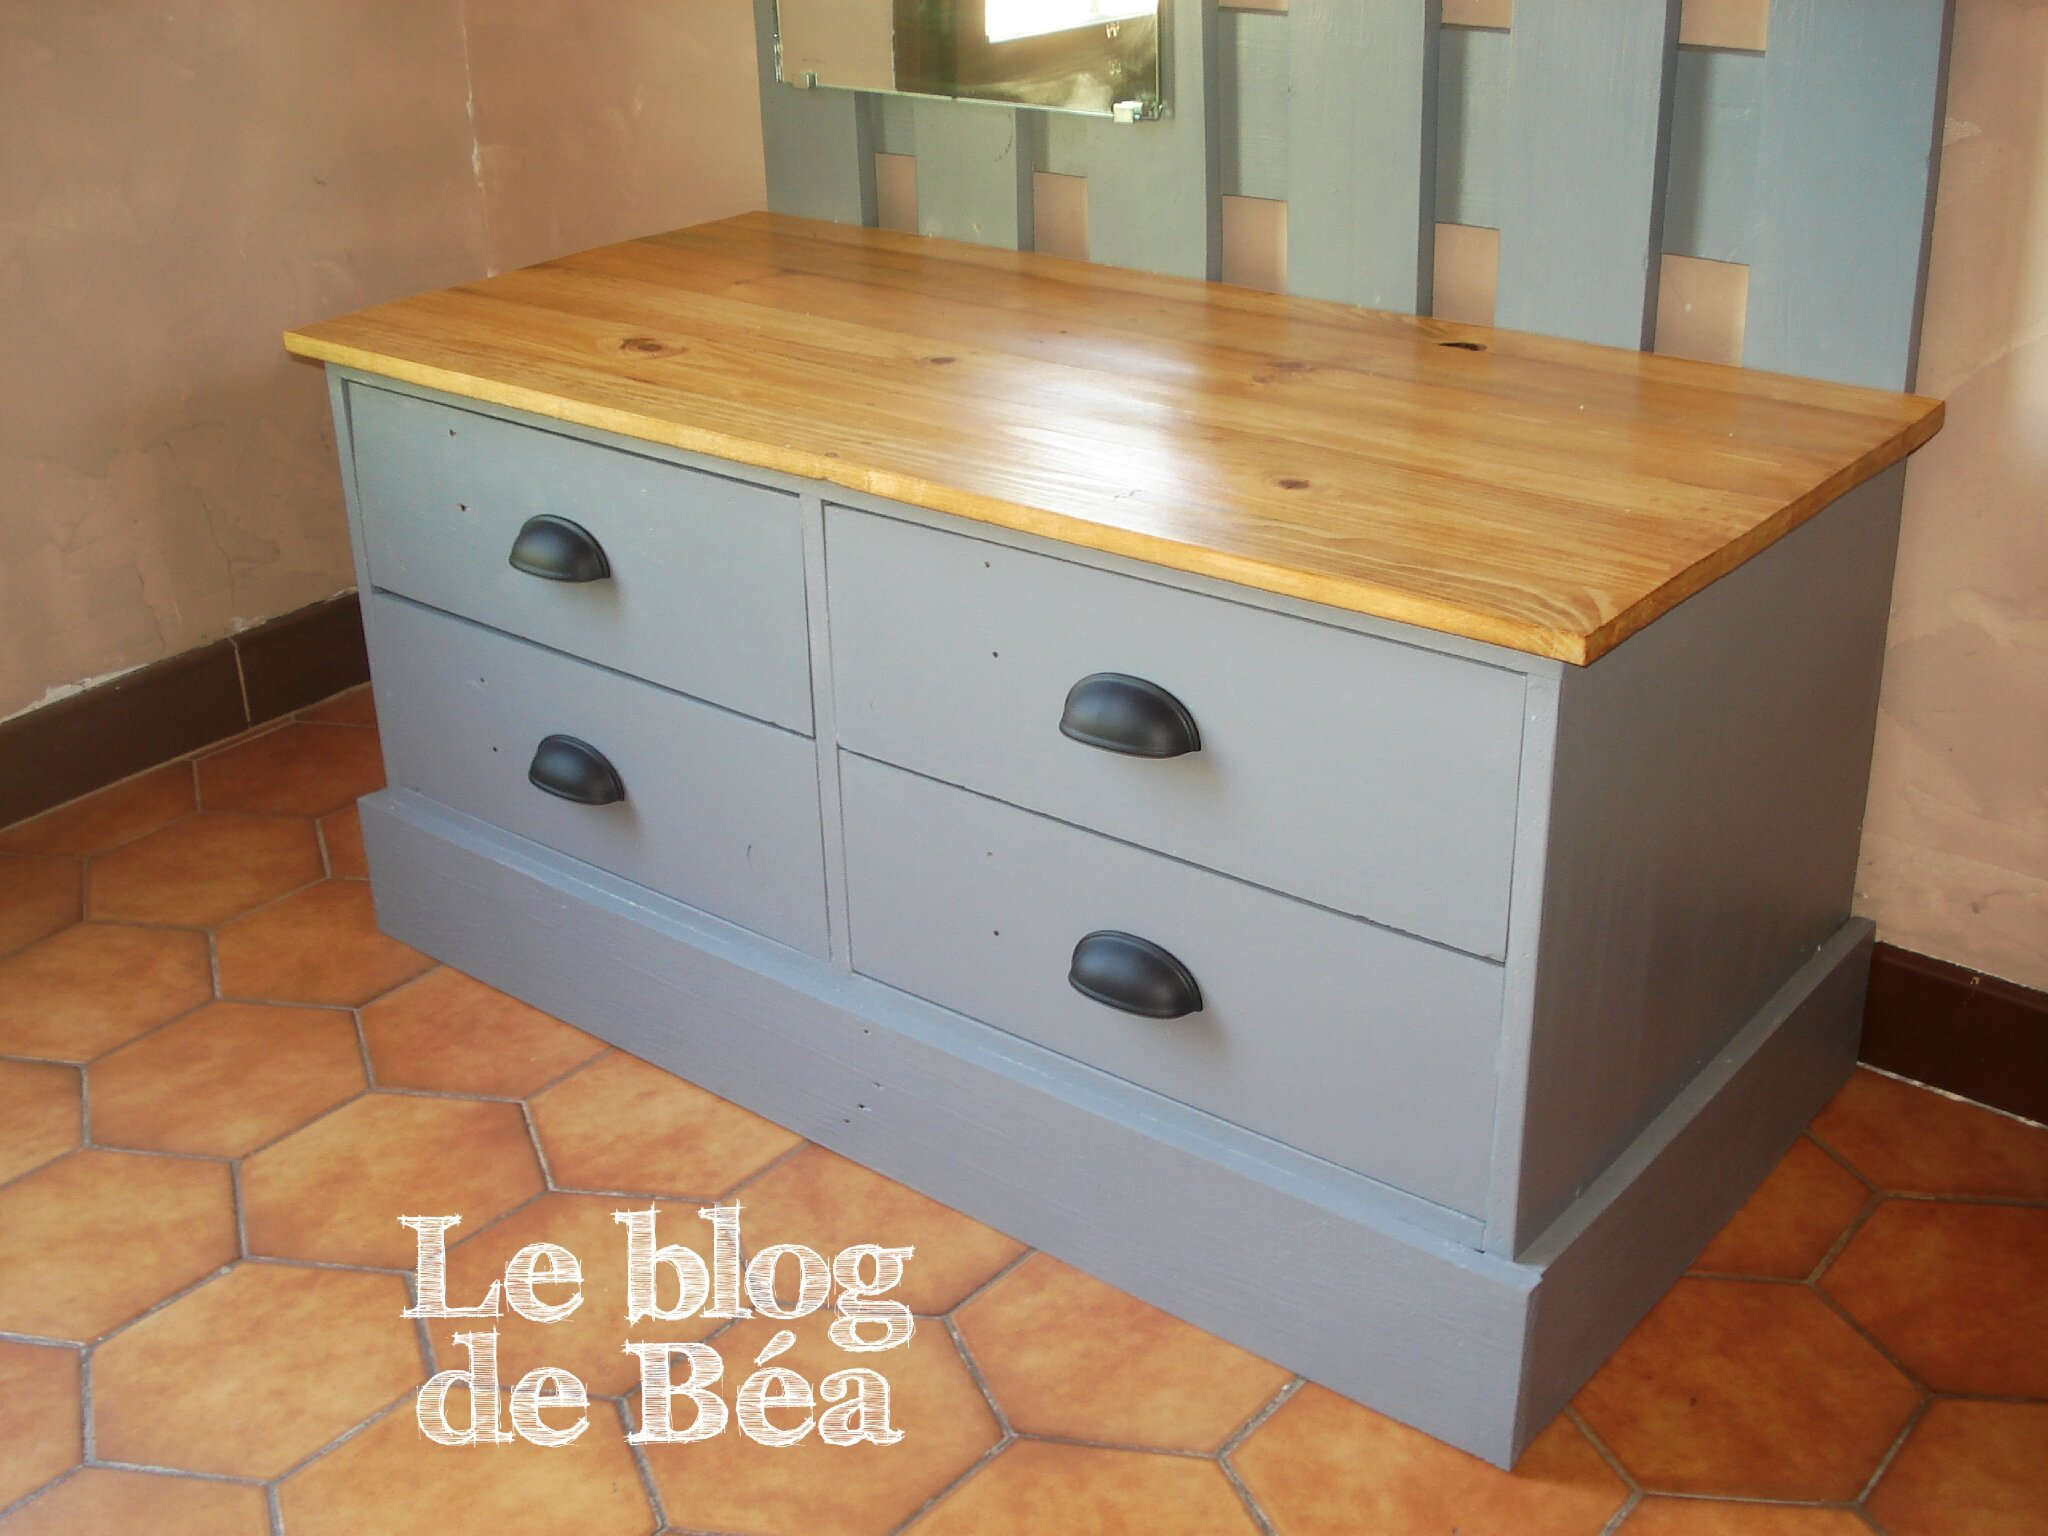 diy vestiaire d 39 entr e en bois de palettes et m dium le blog de b a. Black Bedroom Furniture Sets. Home Design Ideas